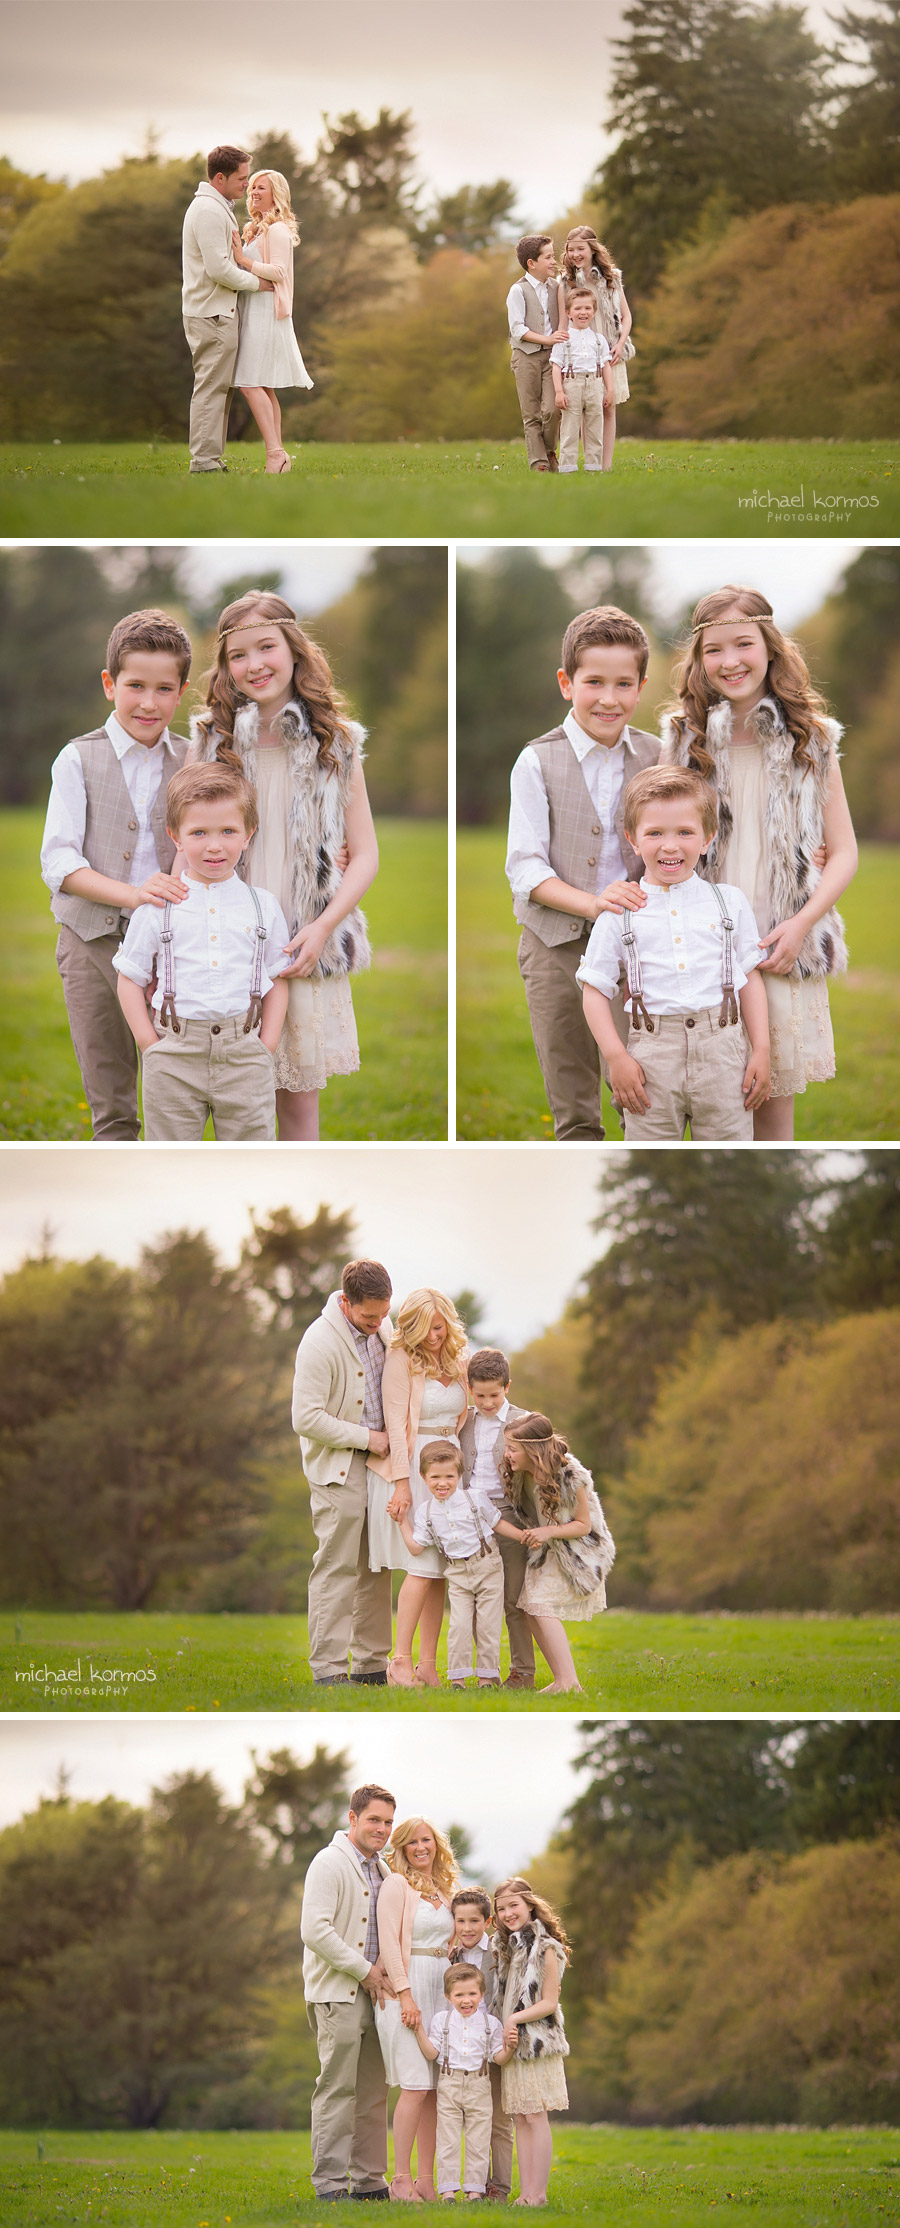 Westchester family portraits captured outdoors in Springtime